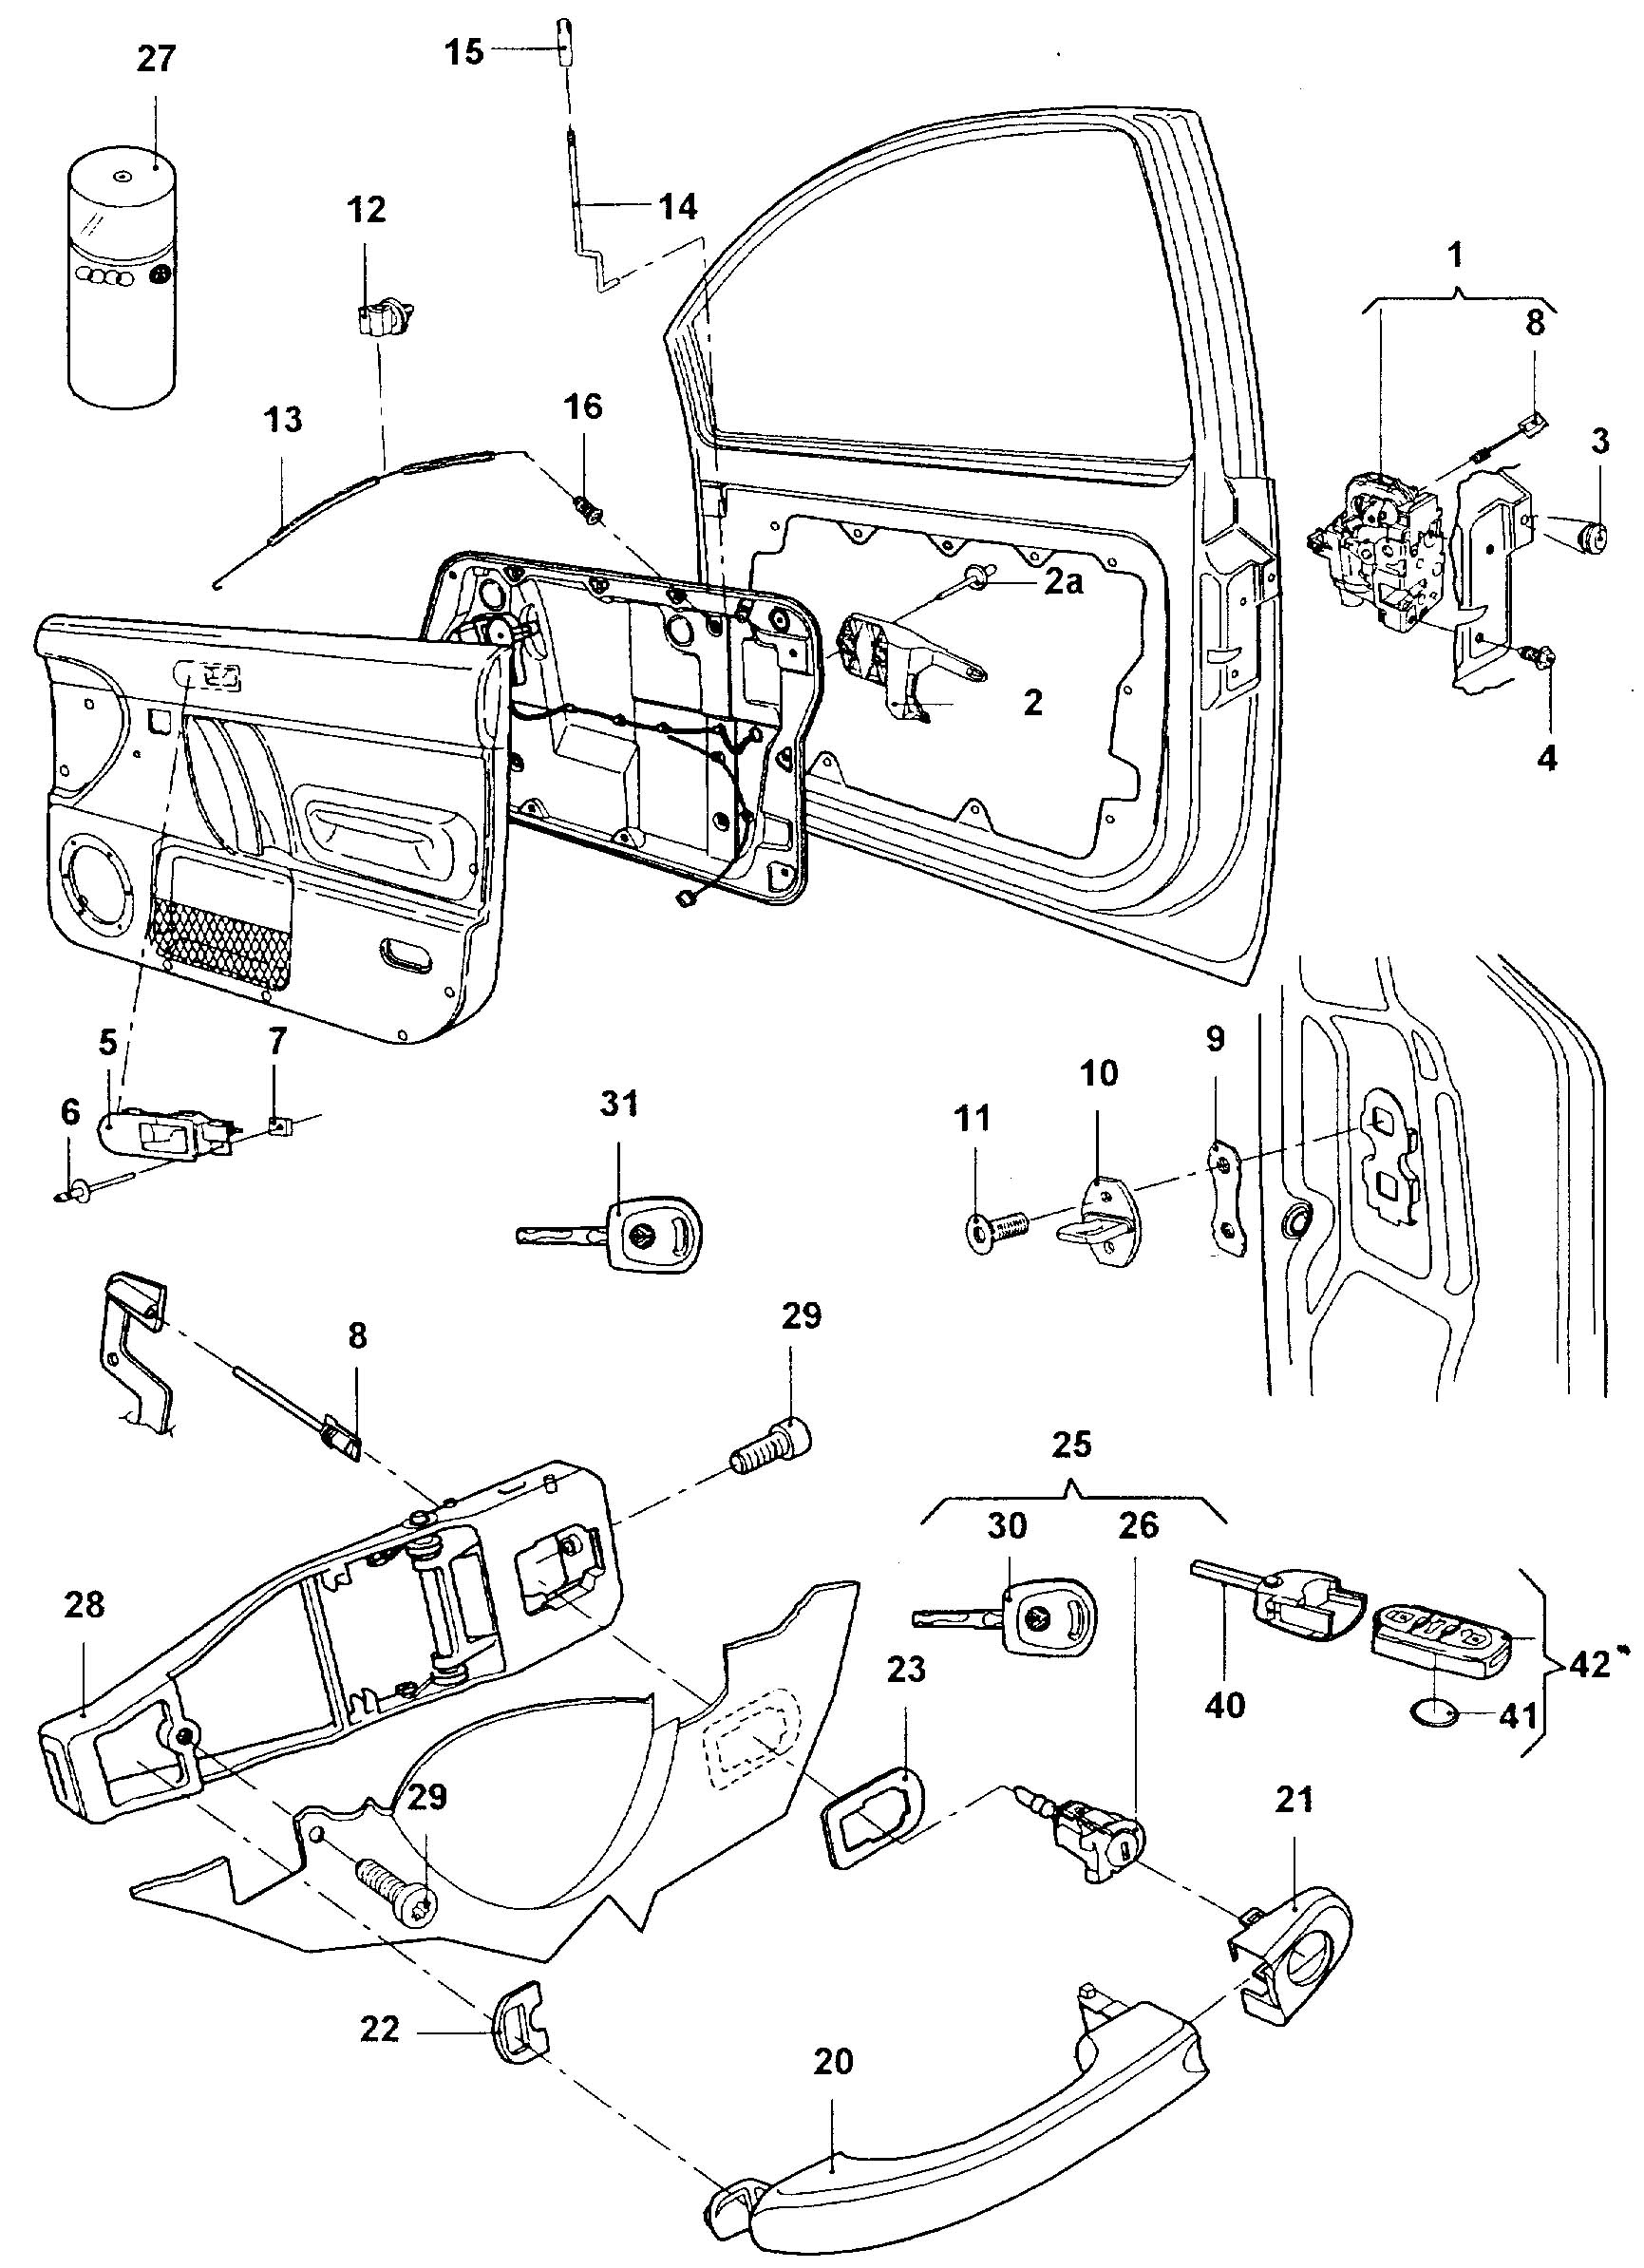 34 Vw Beetle Parts Diagram